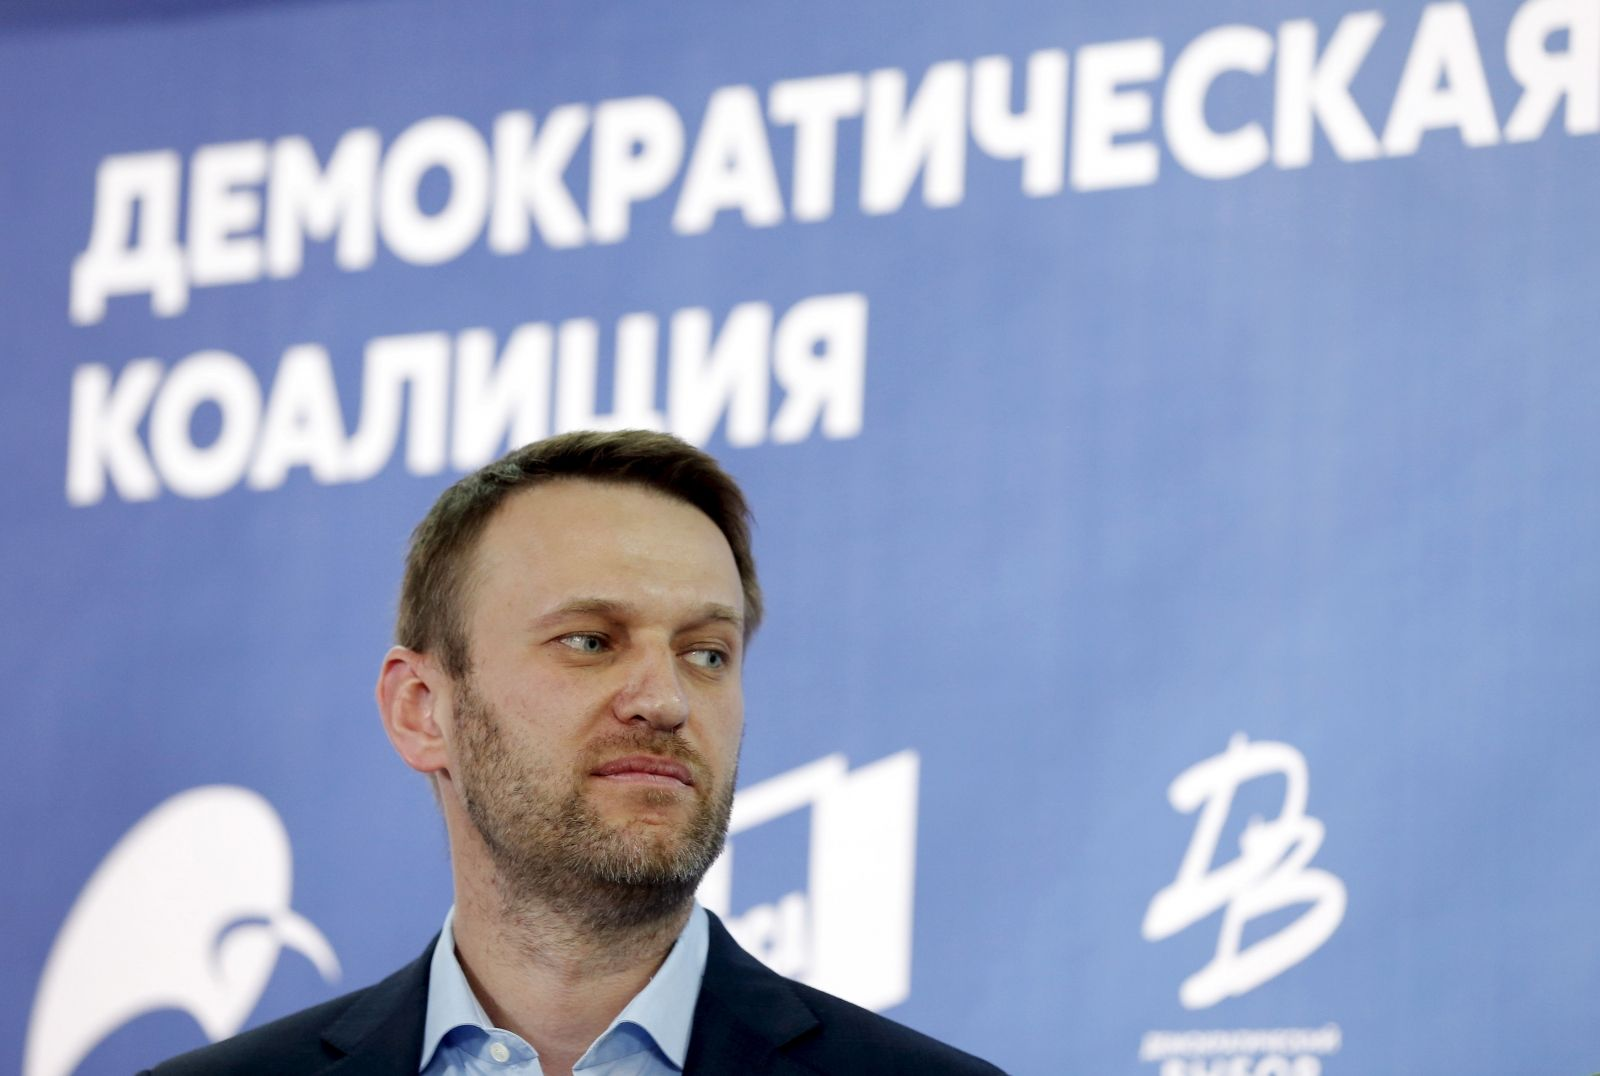 Russian opposition barred from elections